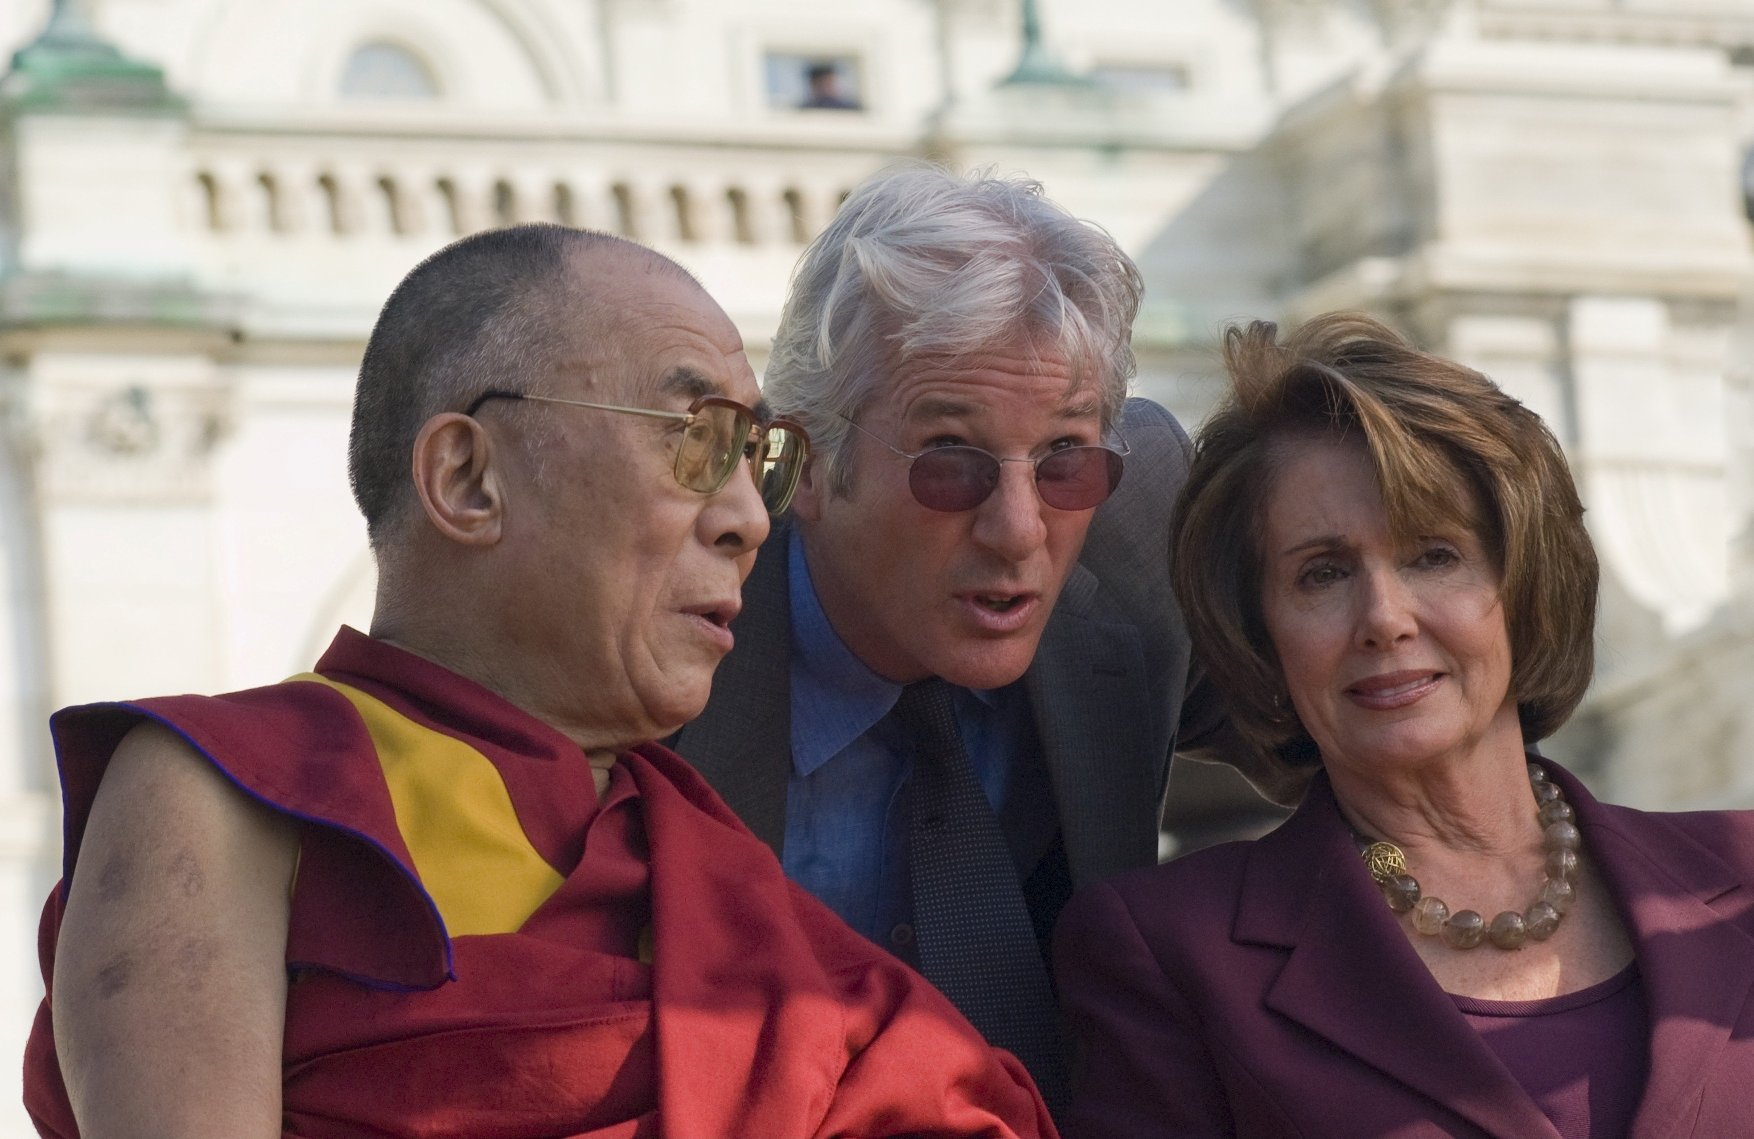 His Holiness, The Dalai Lama chats with actor Richard Gere and Speaker of the House, Nancy Pelosi, D-CA before addressing the crowd of supporters on the West front of the US Capital. The Dalai Lama was given the Congressional Medal of Freedom, the highest award that Congress bestows. The Dalai Lama given the Congressional Medal of Freedom, Washington DC, America - 17 Oct 2007   701751h, Image: 226415521, License: Rights-managed, Restrictions: , Model Release: no, Credit line: Profimedia, TEMP Rex Features